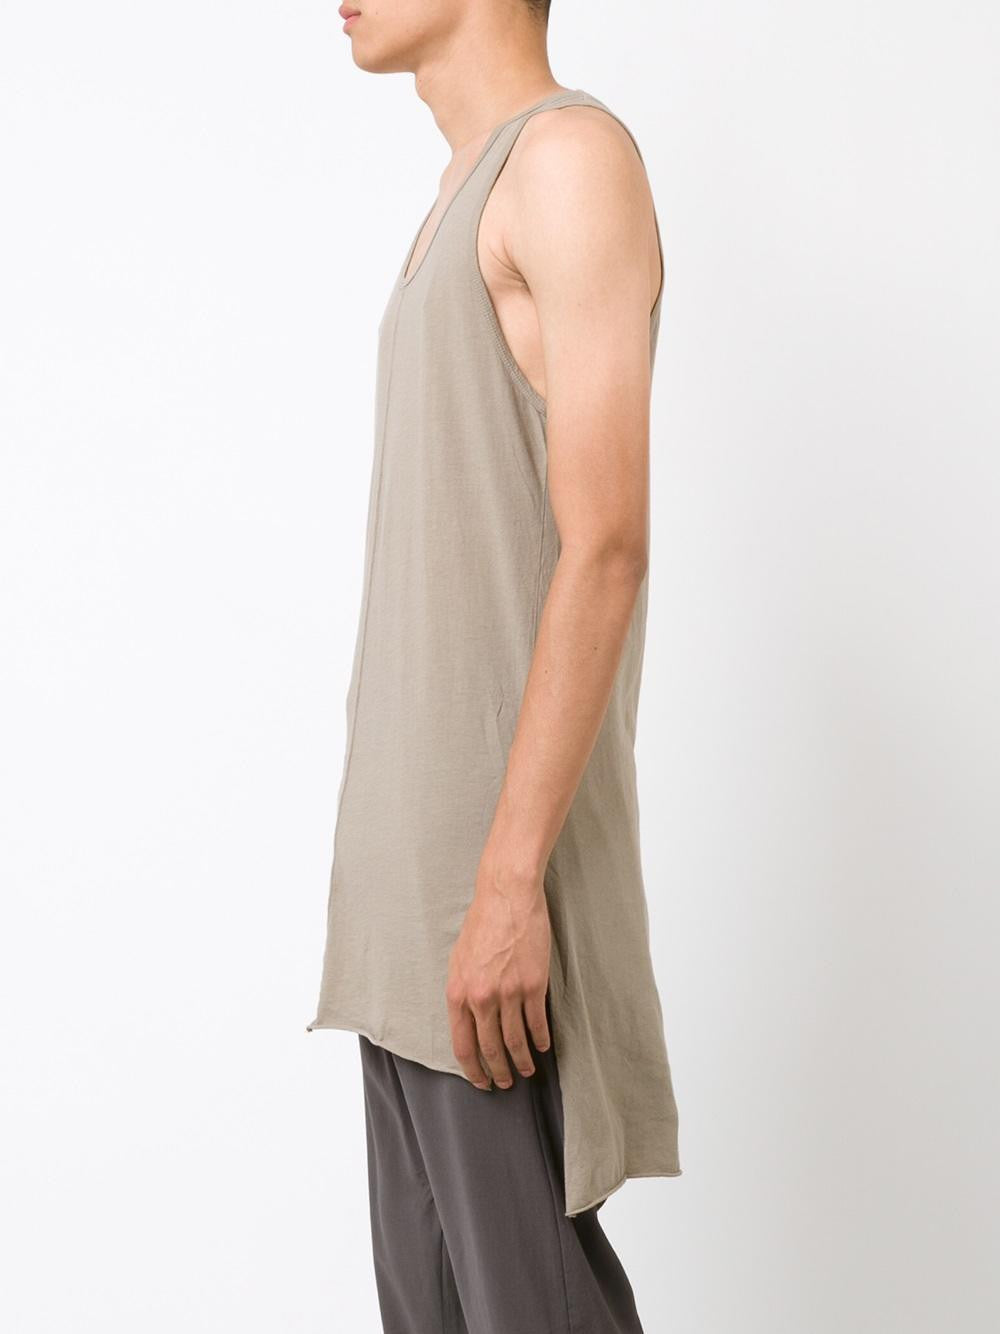 Cotton Trail Tank II | 16010912 TRAIL TANK II